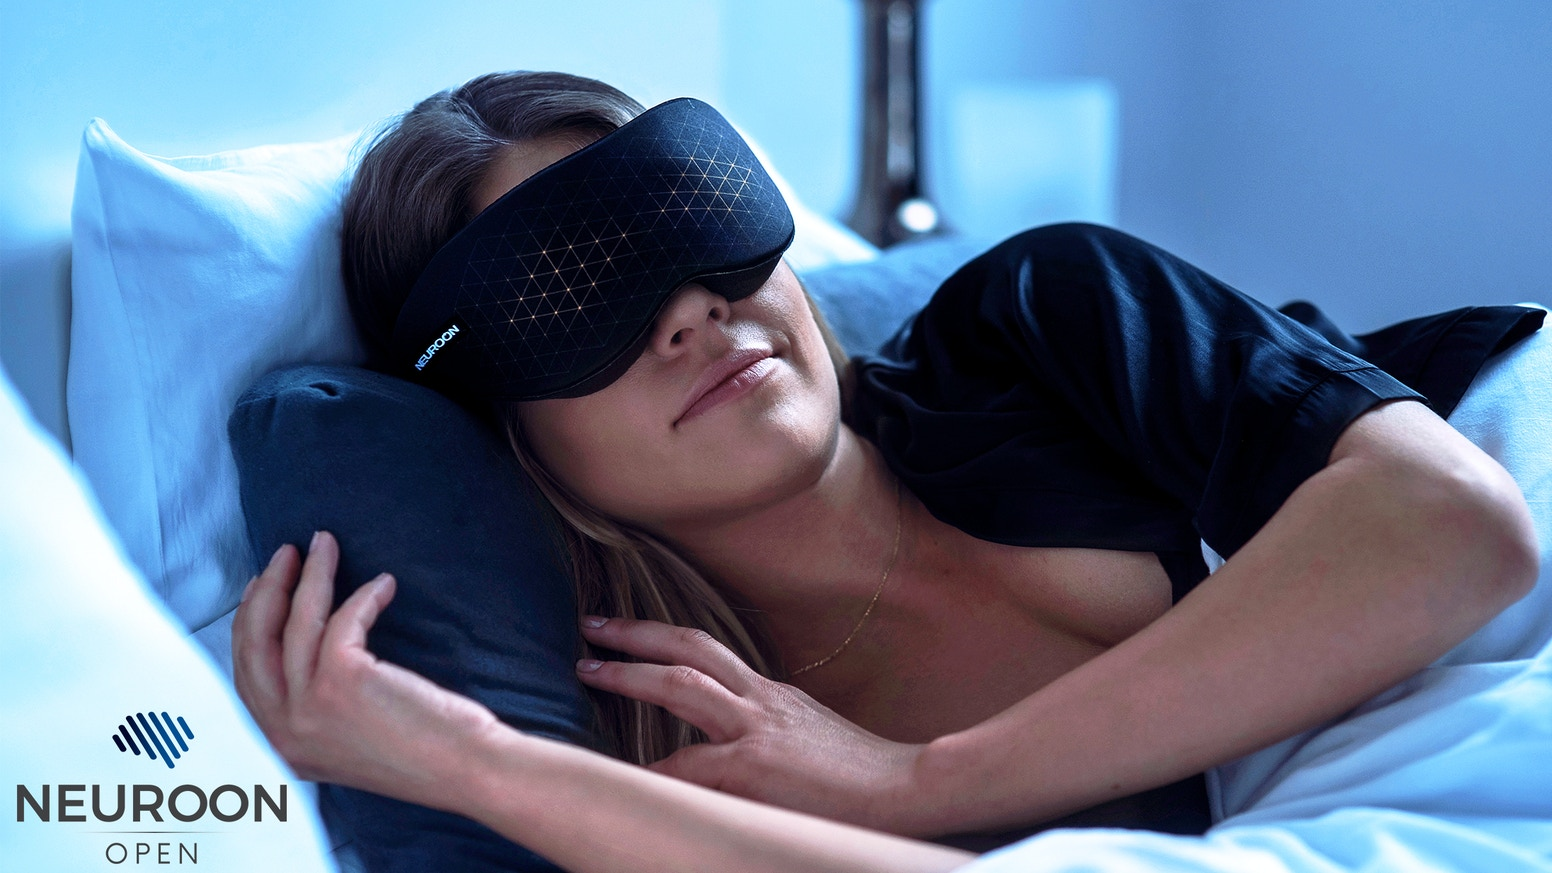 Neuroon Open is a wearable that wakes you up feeling energized, improves your sleep and helps you to experience lucid dreams